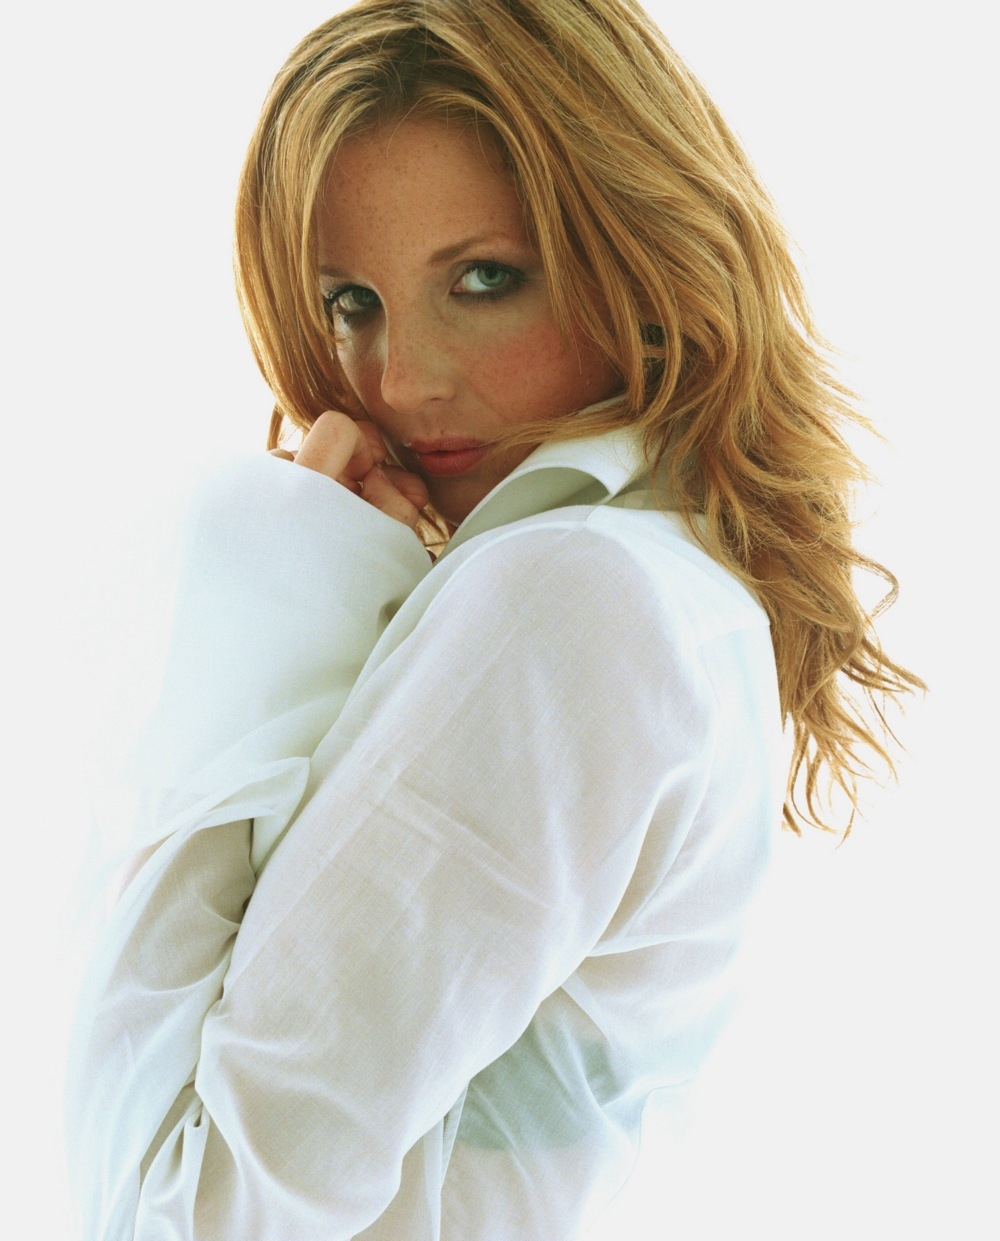 1000x1241 - Kelly Reilly Wallpapers 3